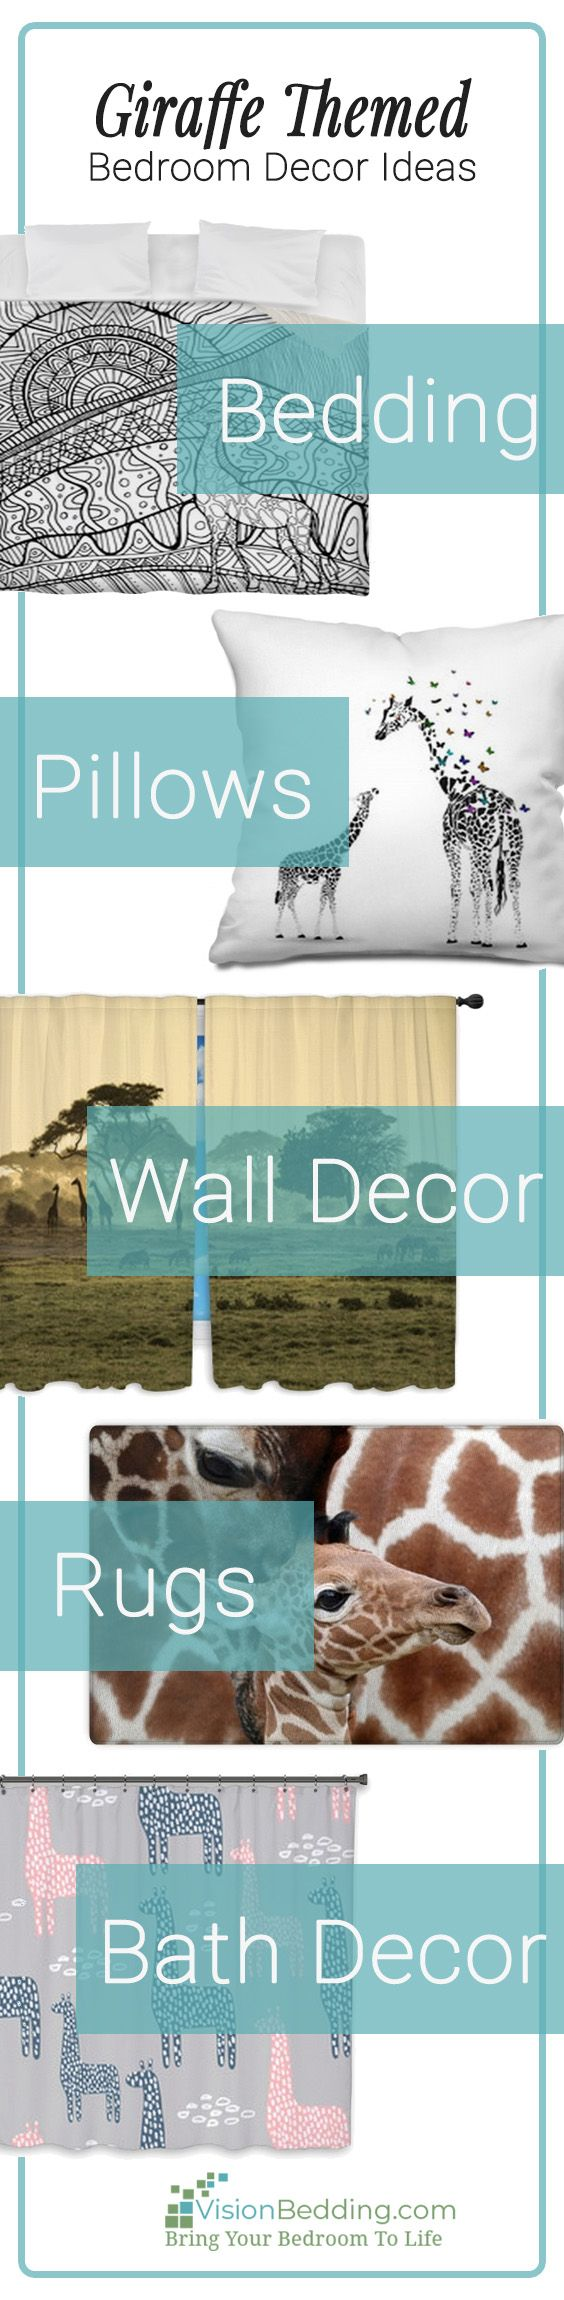 Cool Giraffe Themed Bedroom Decorating Ides Create A Unique